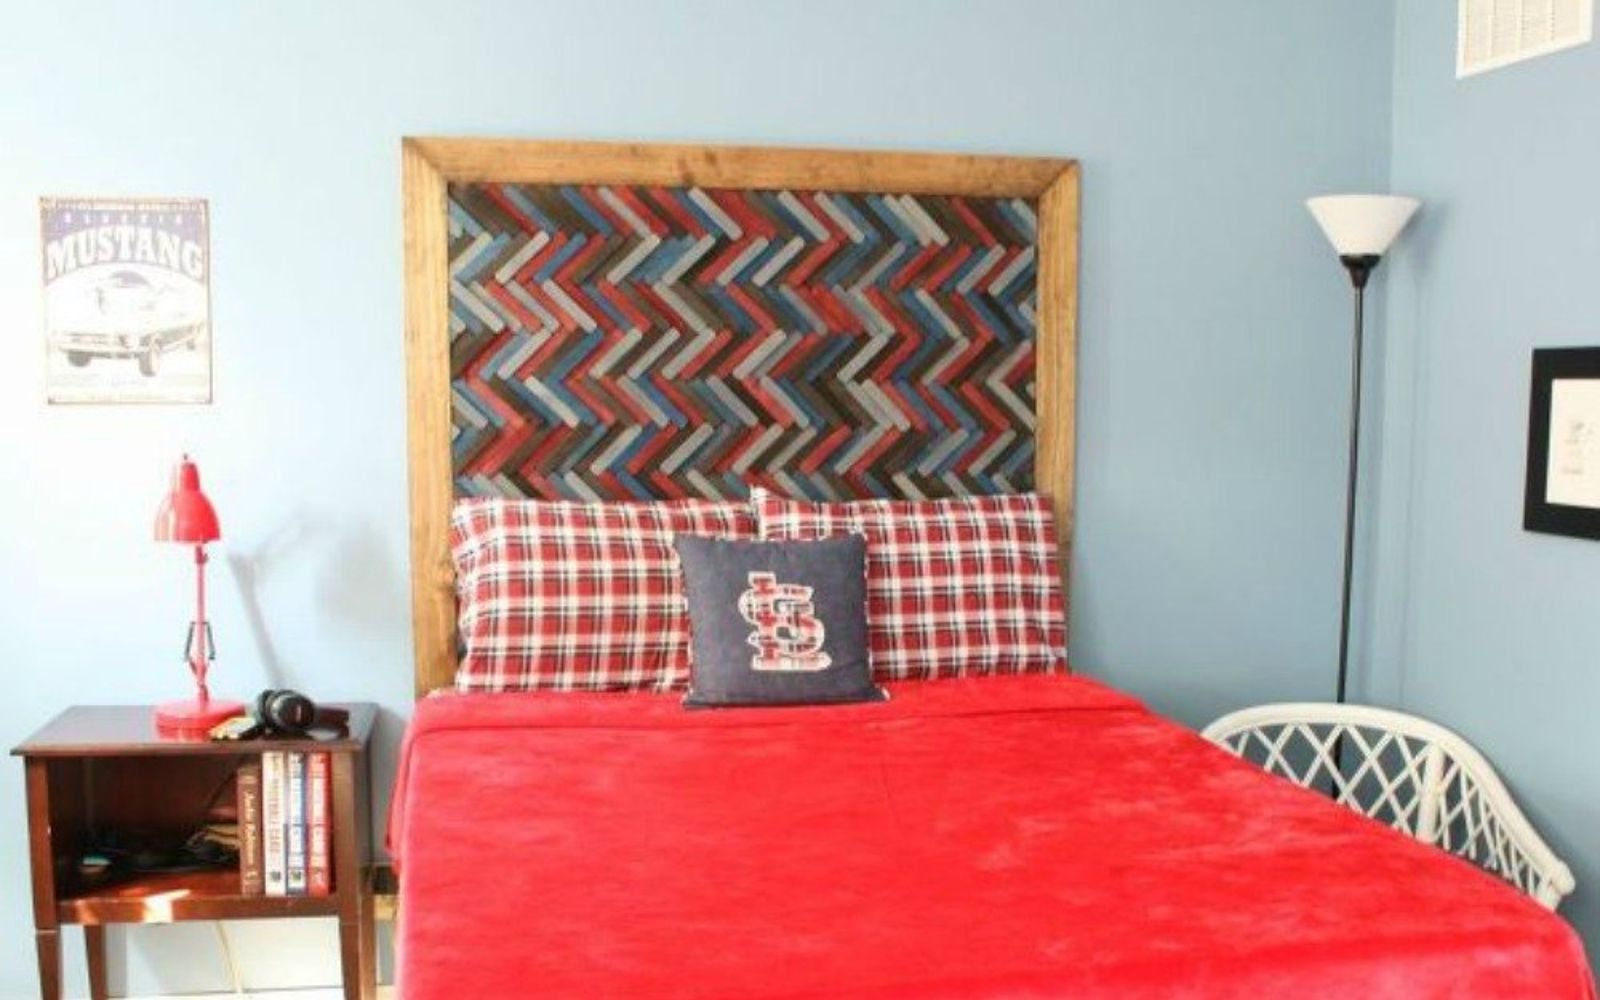 s these are the diy headboard ideas you ve been dreaming of, This herringbone hottie